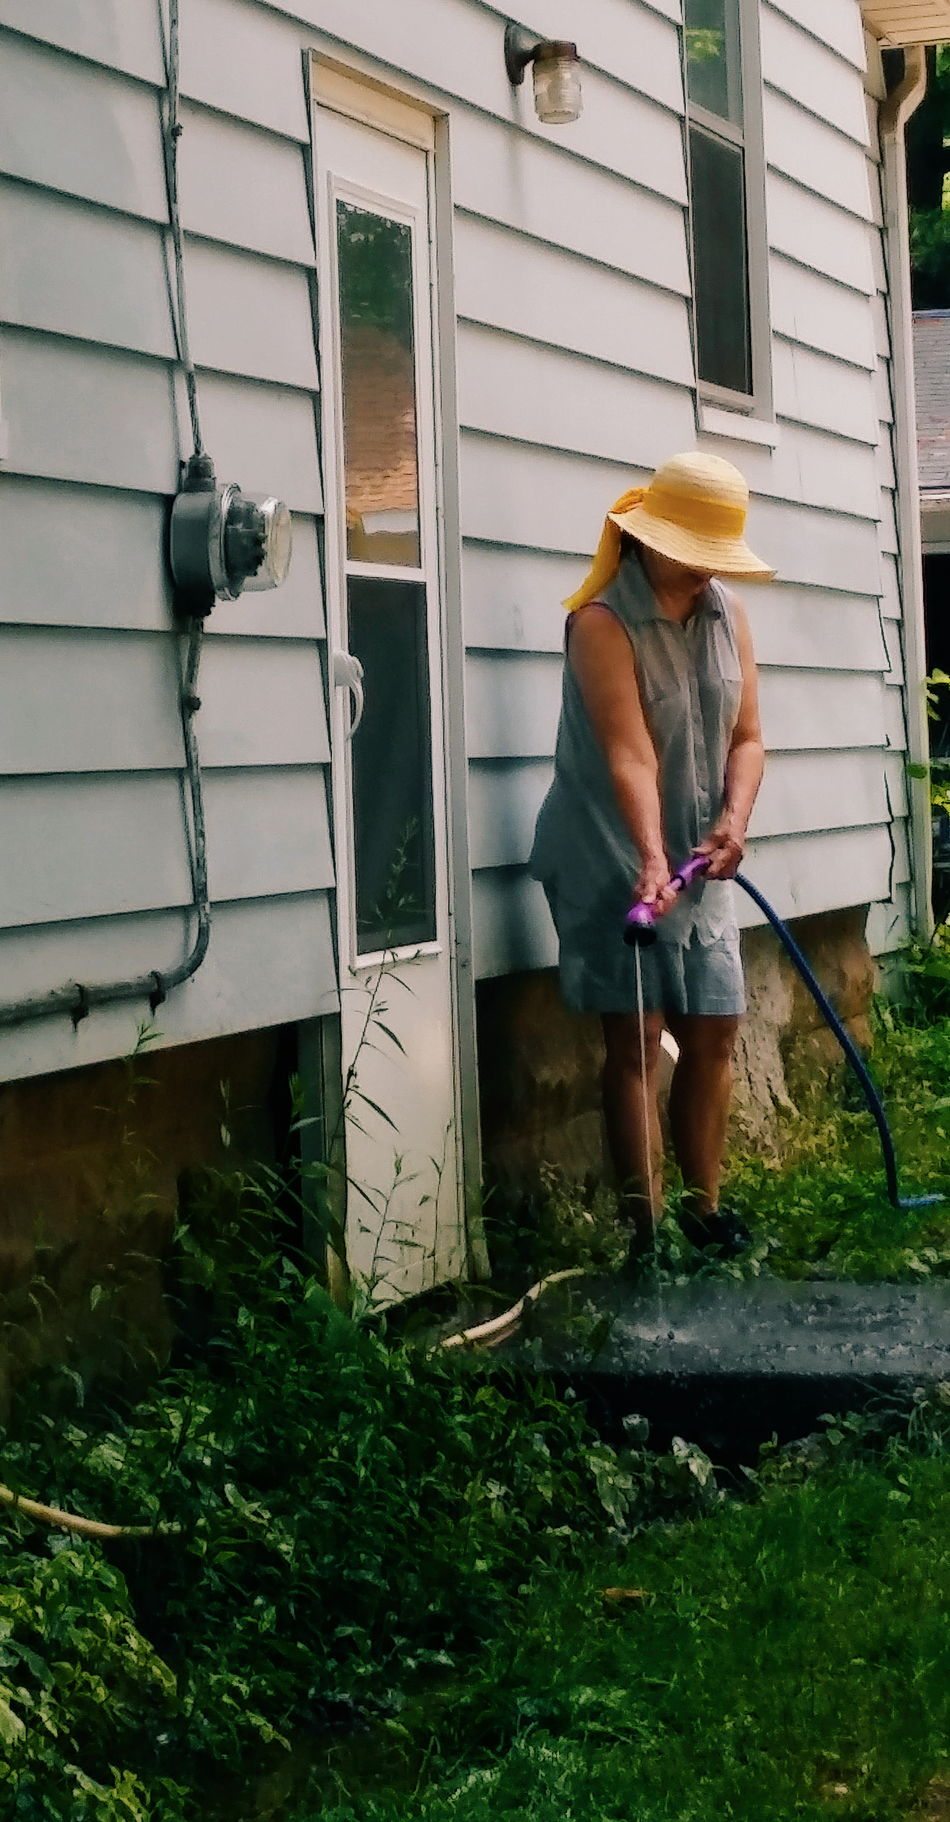 Yellow Hat Spraying Water Jackson Michigan Water Hose